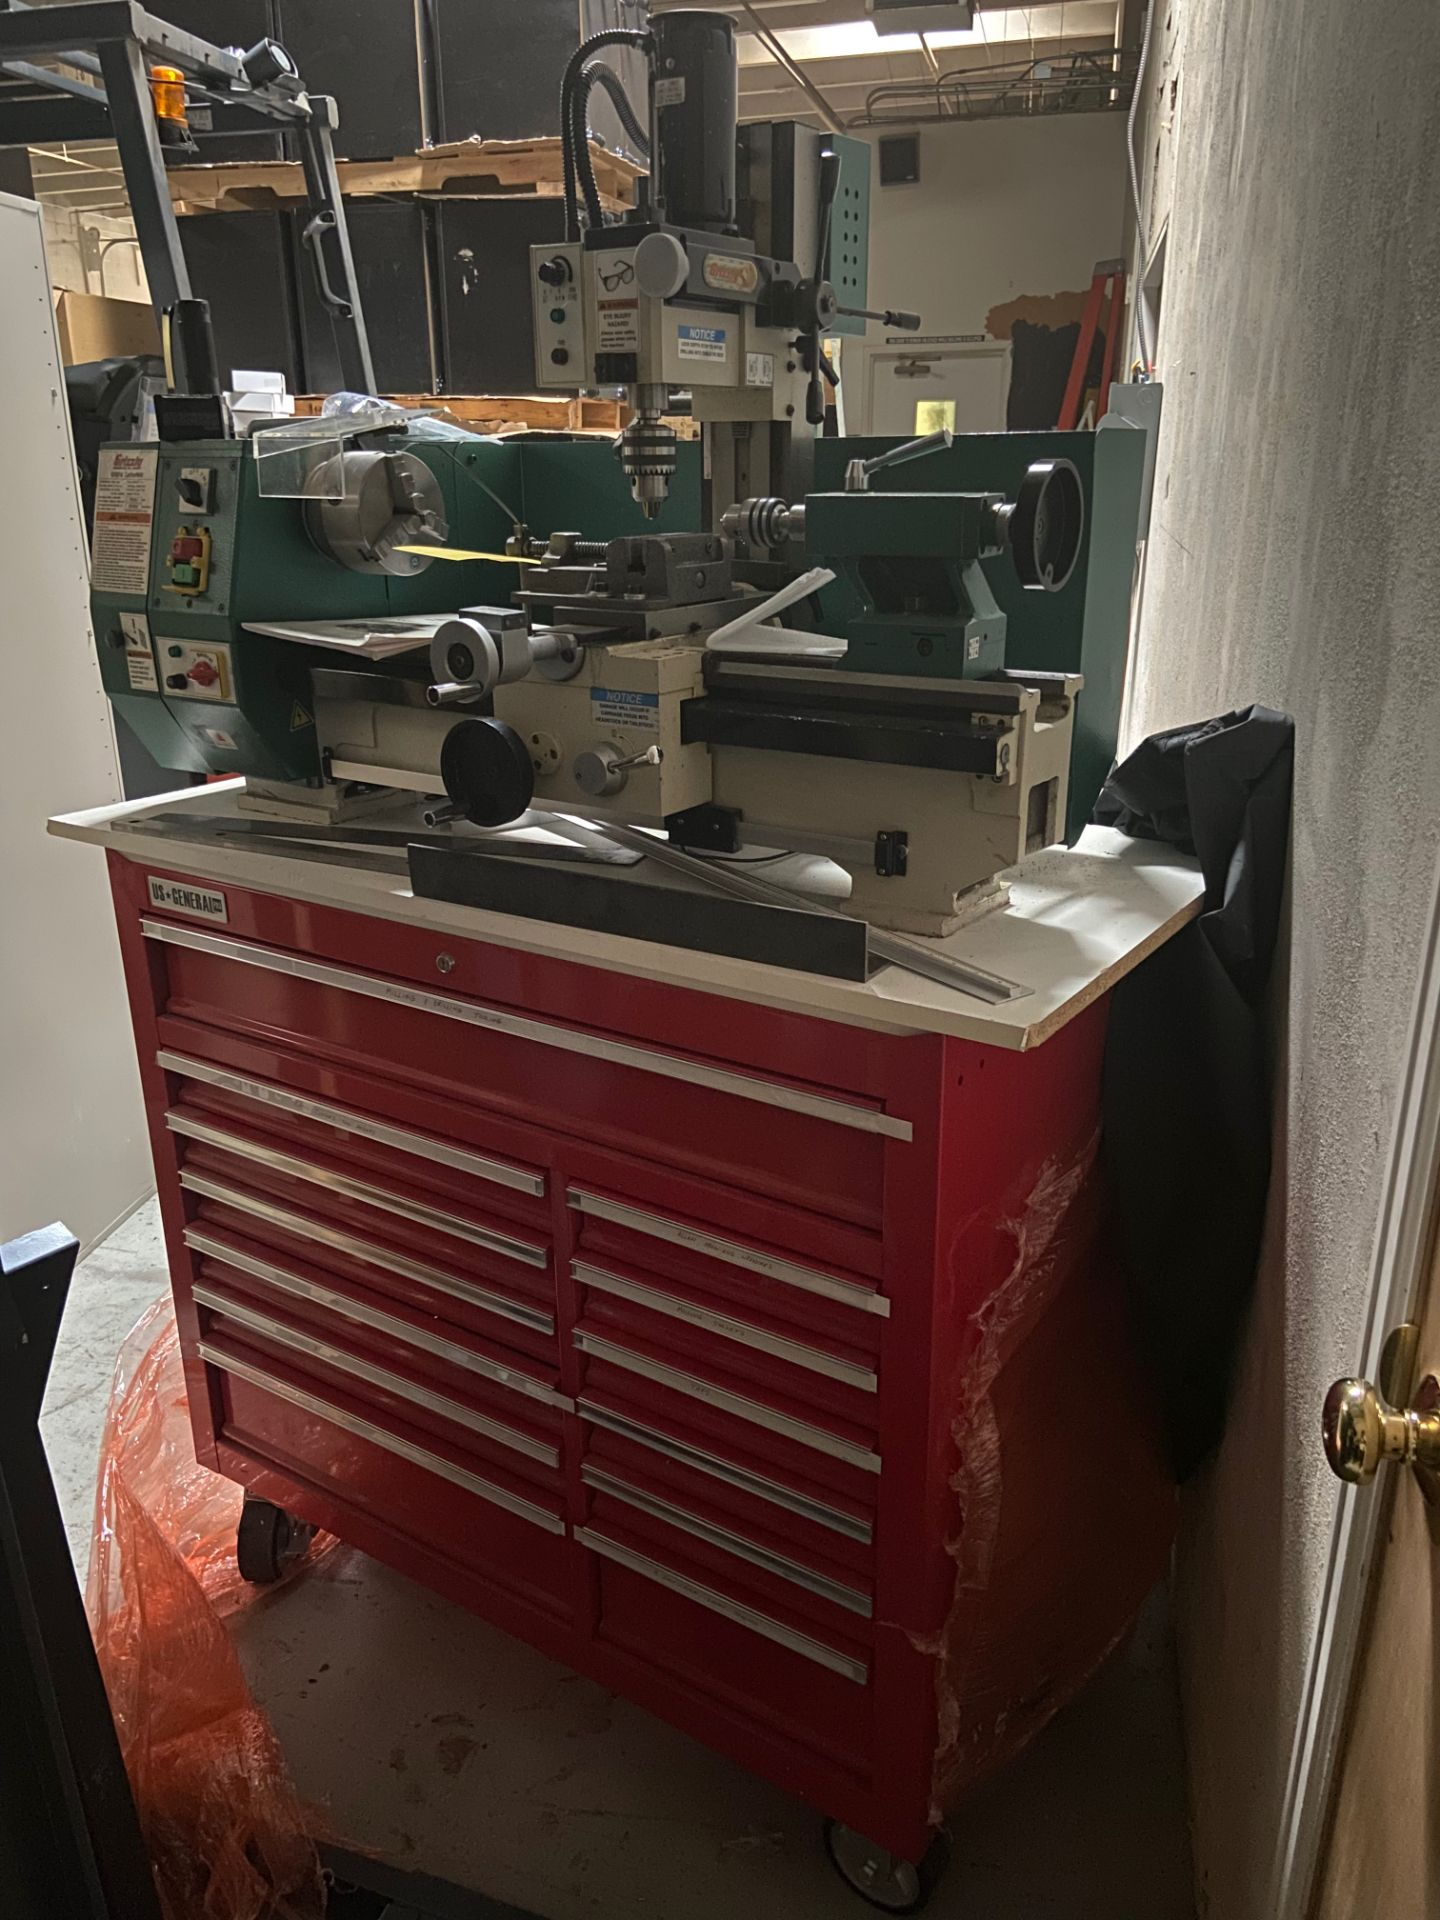 Grizzly Industrial Lathe/Mill, Model# G0516, Serial# MO120045, Lathe Motor 3/4 hp, 110V, 150-2400 - Image 6 of 12